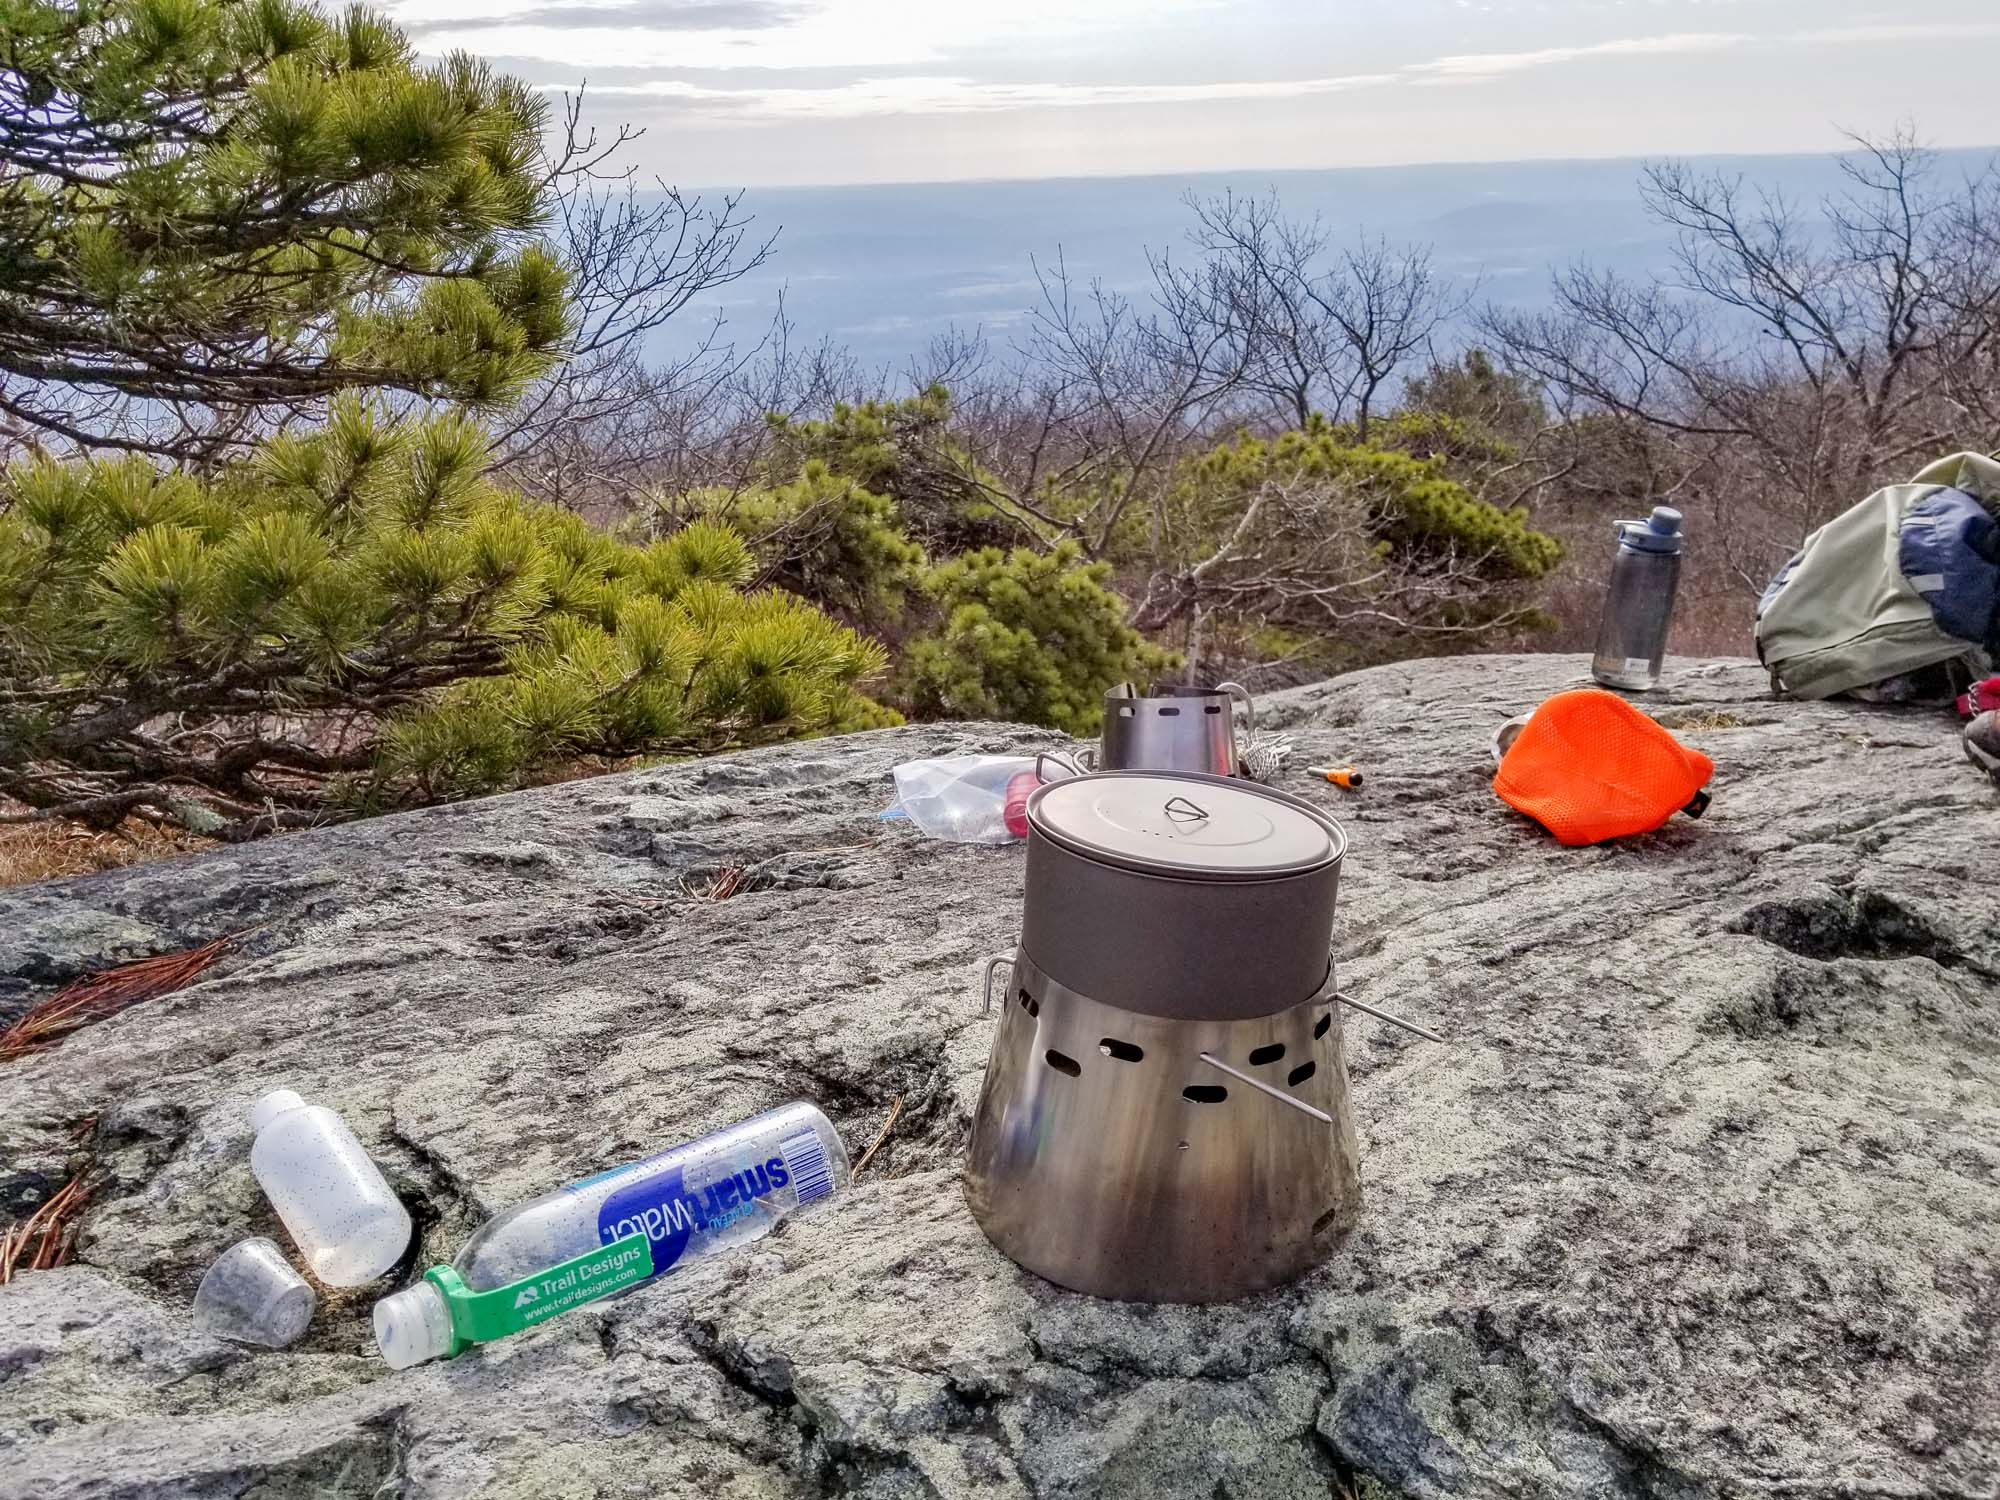 Daniel Taylor send us this picture of his Ti-Tri from Mt Everett in Southwest Massachusetts while hiking the AT!